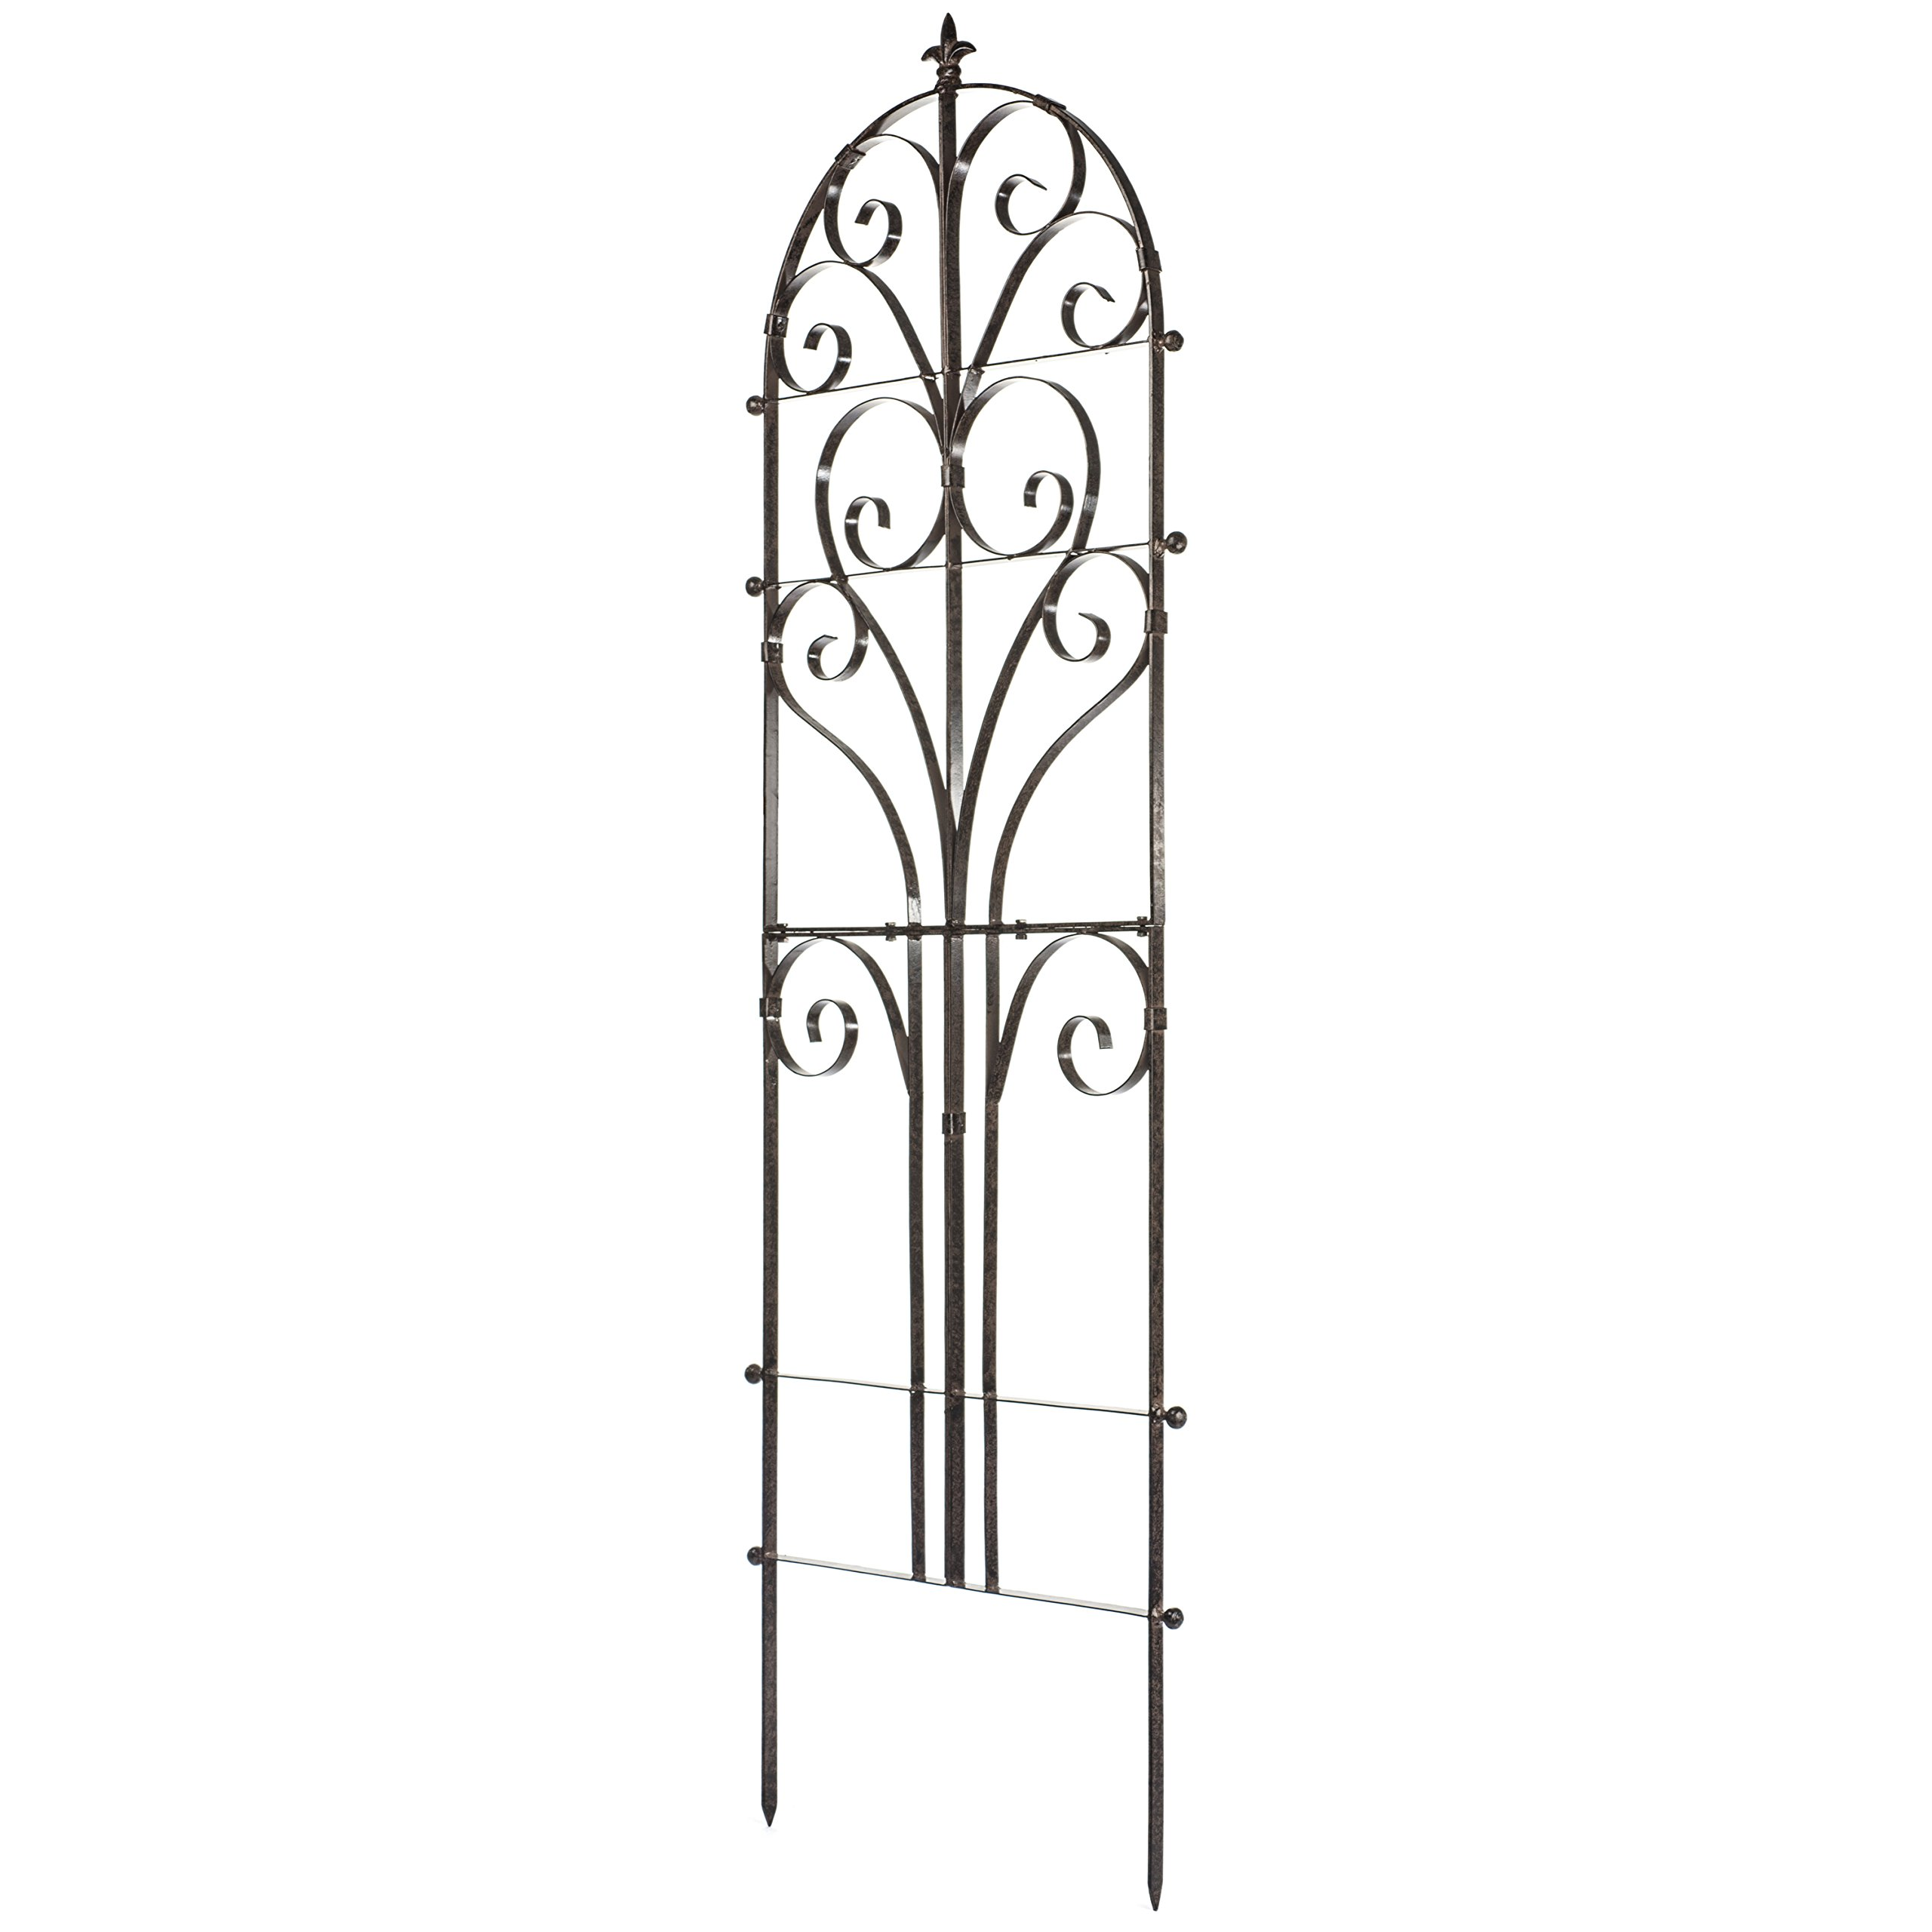 H Potter Italian Iron Garden Plant Trellis Metal Weather Resistant Wall Art by H Potter